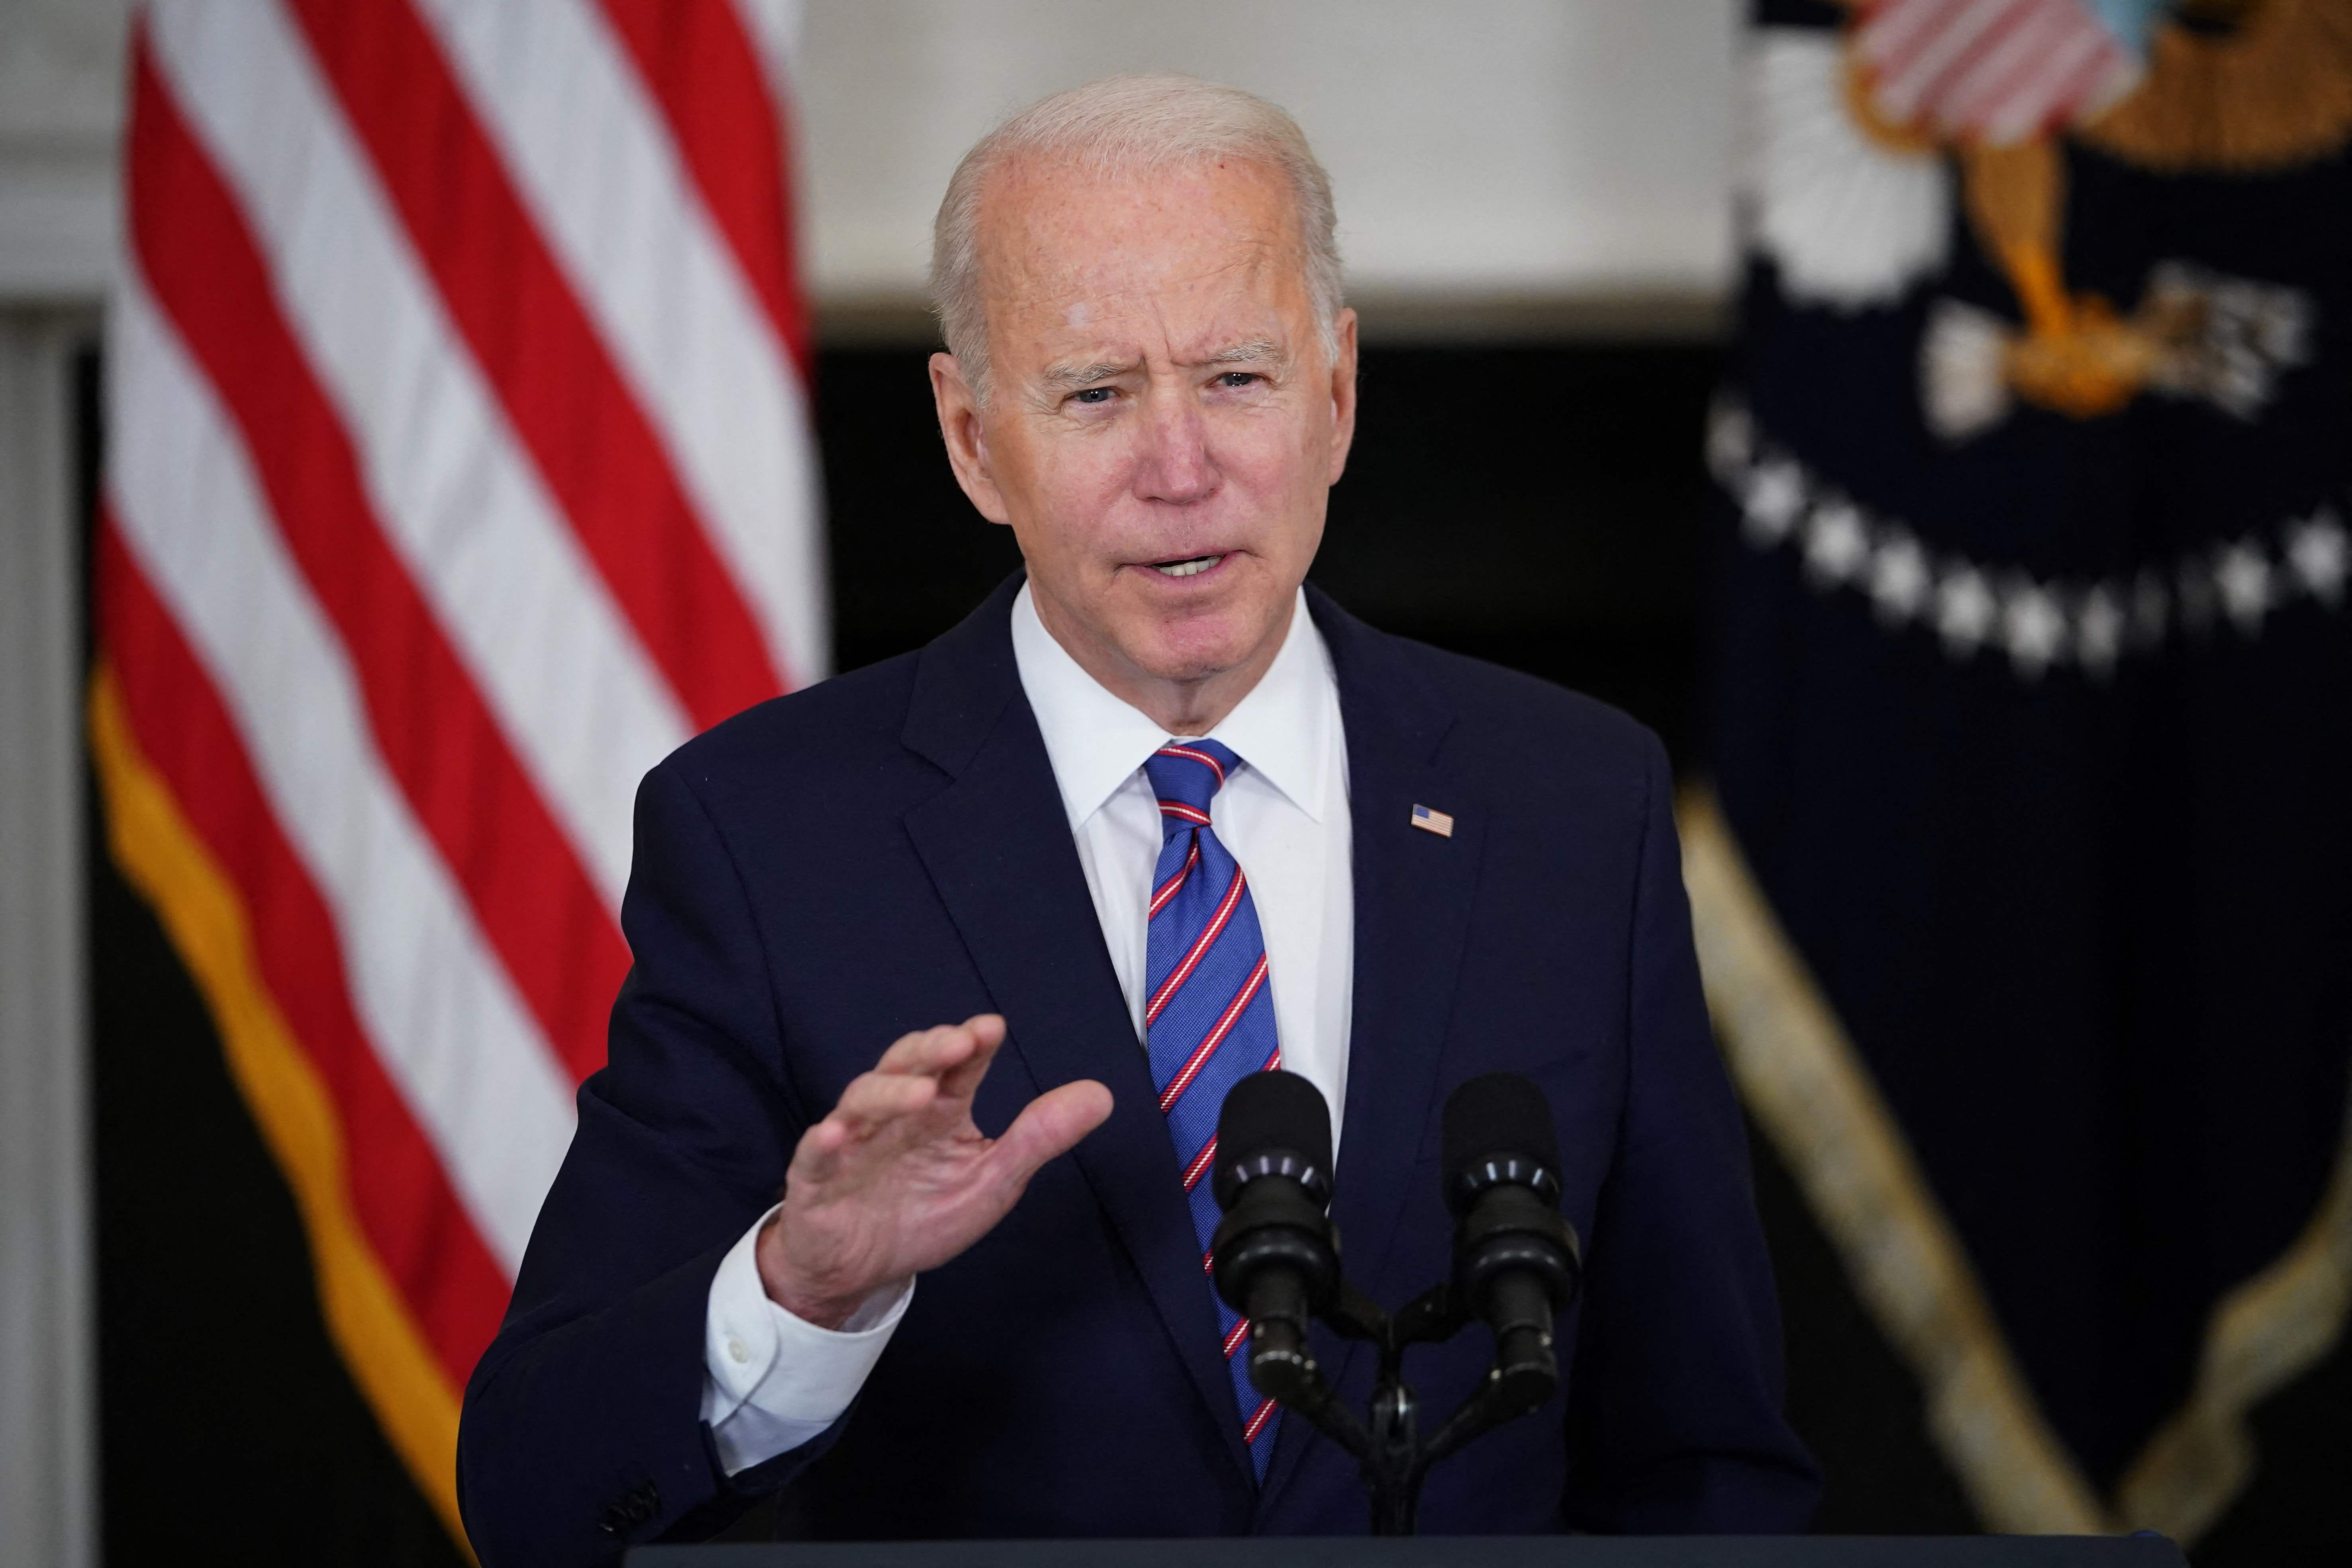 Biden set to deliver his first address before joint session of Congress